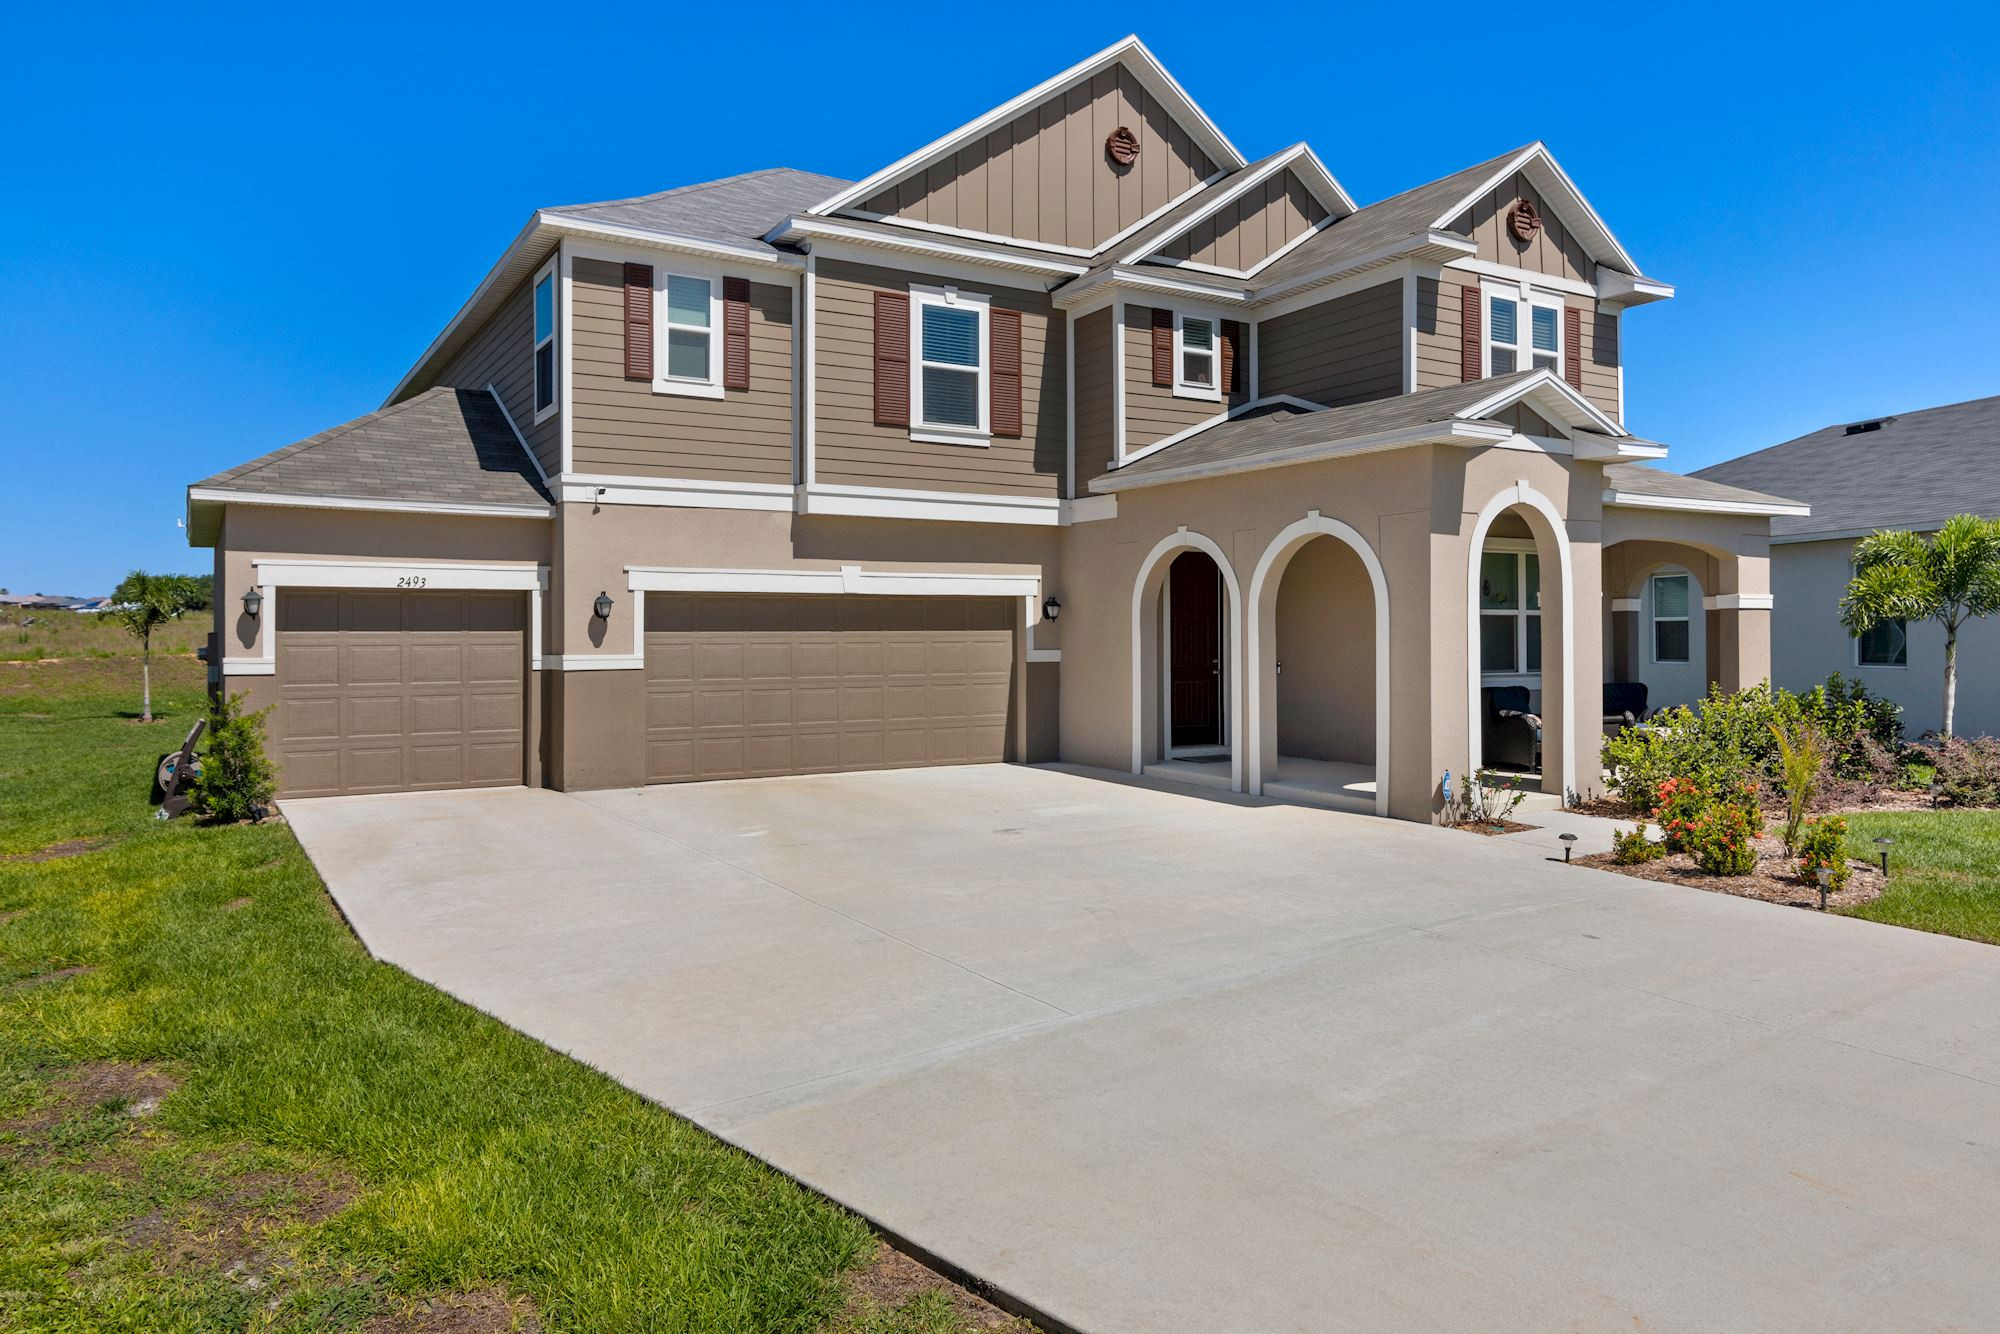 Real Estate Imaging Services